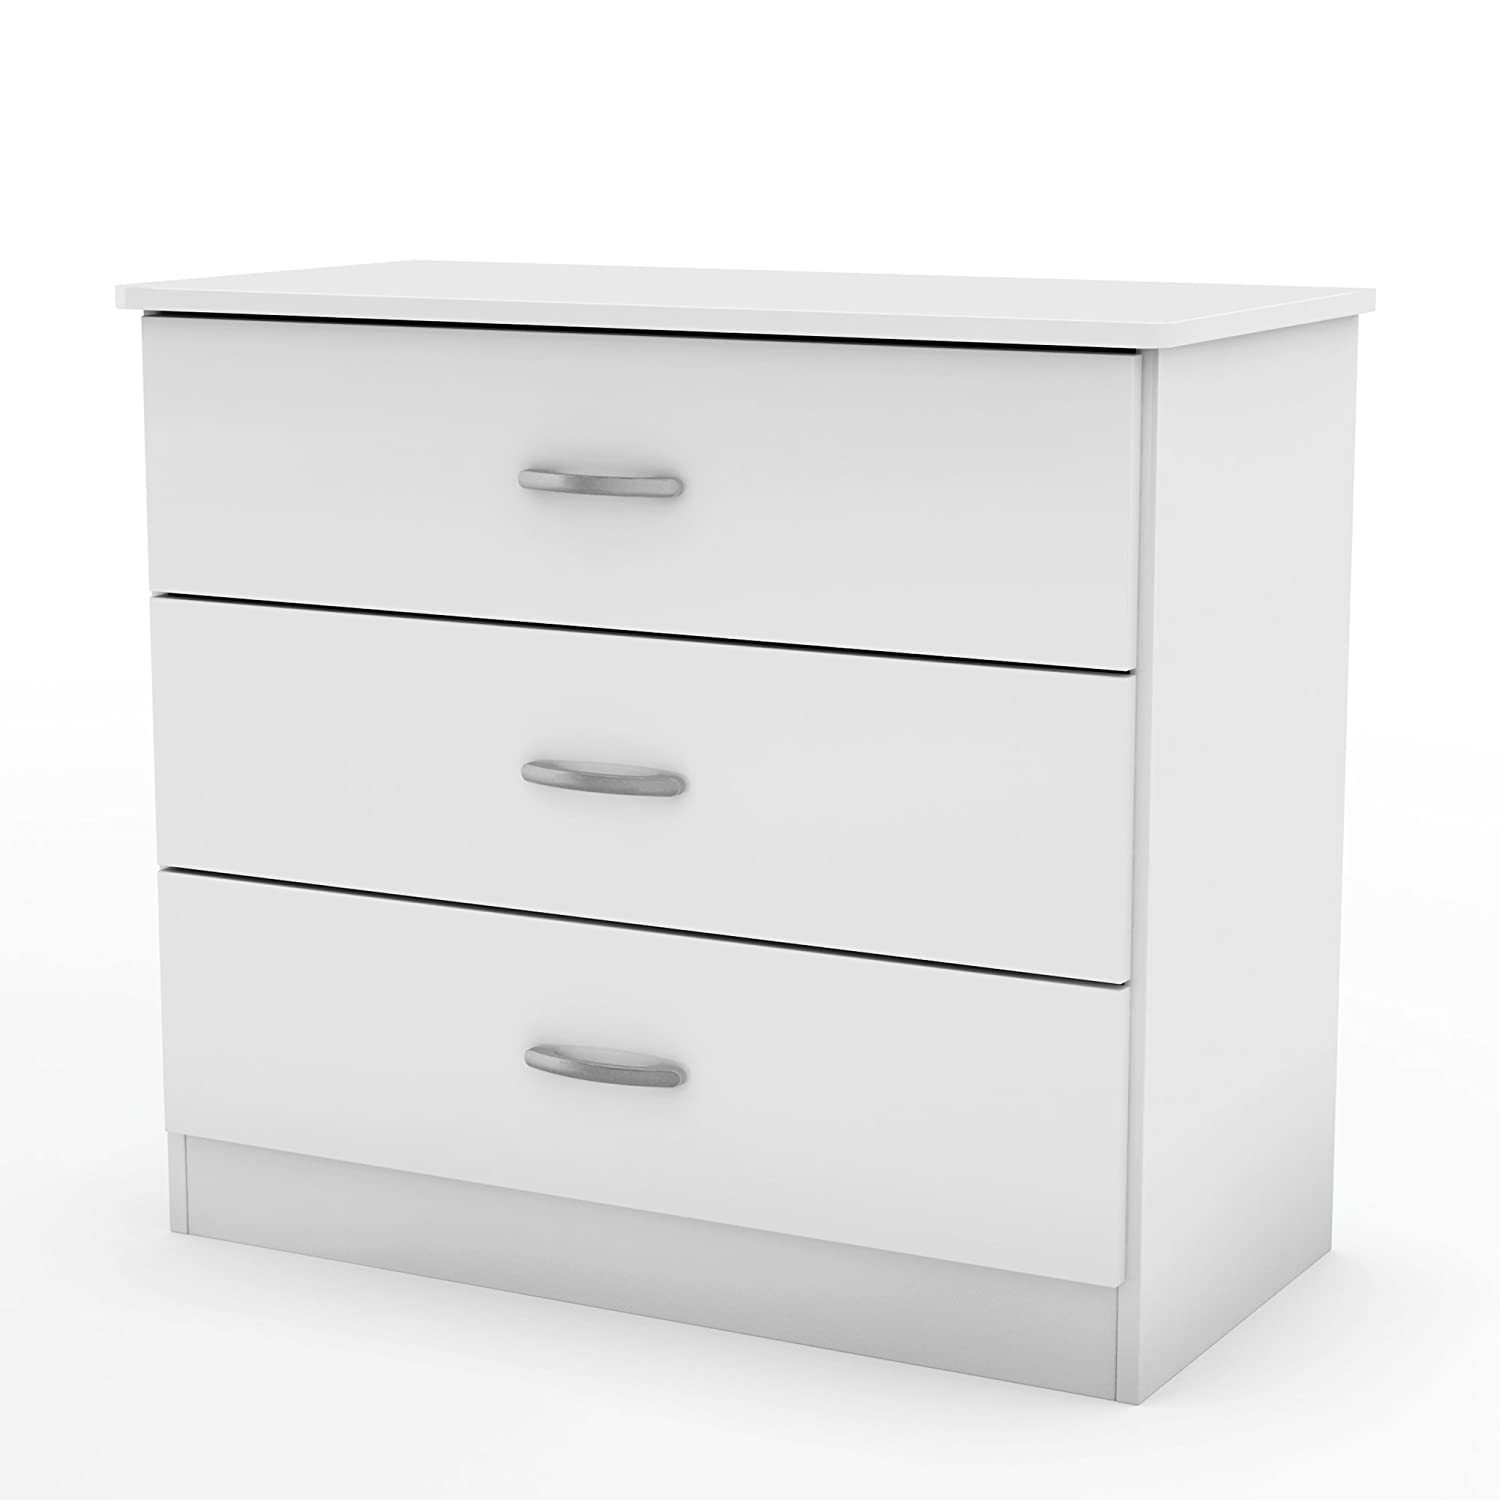 South Shore Libra Collection 3-Drawer Dresser, Chocolate with Metal Handles in Pewter Finish 3159033